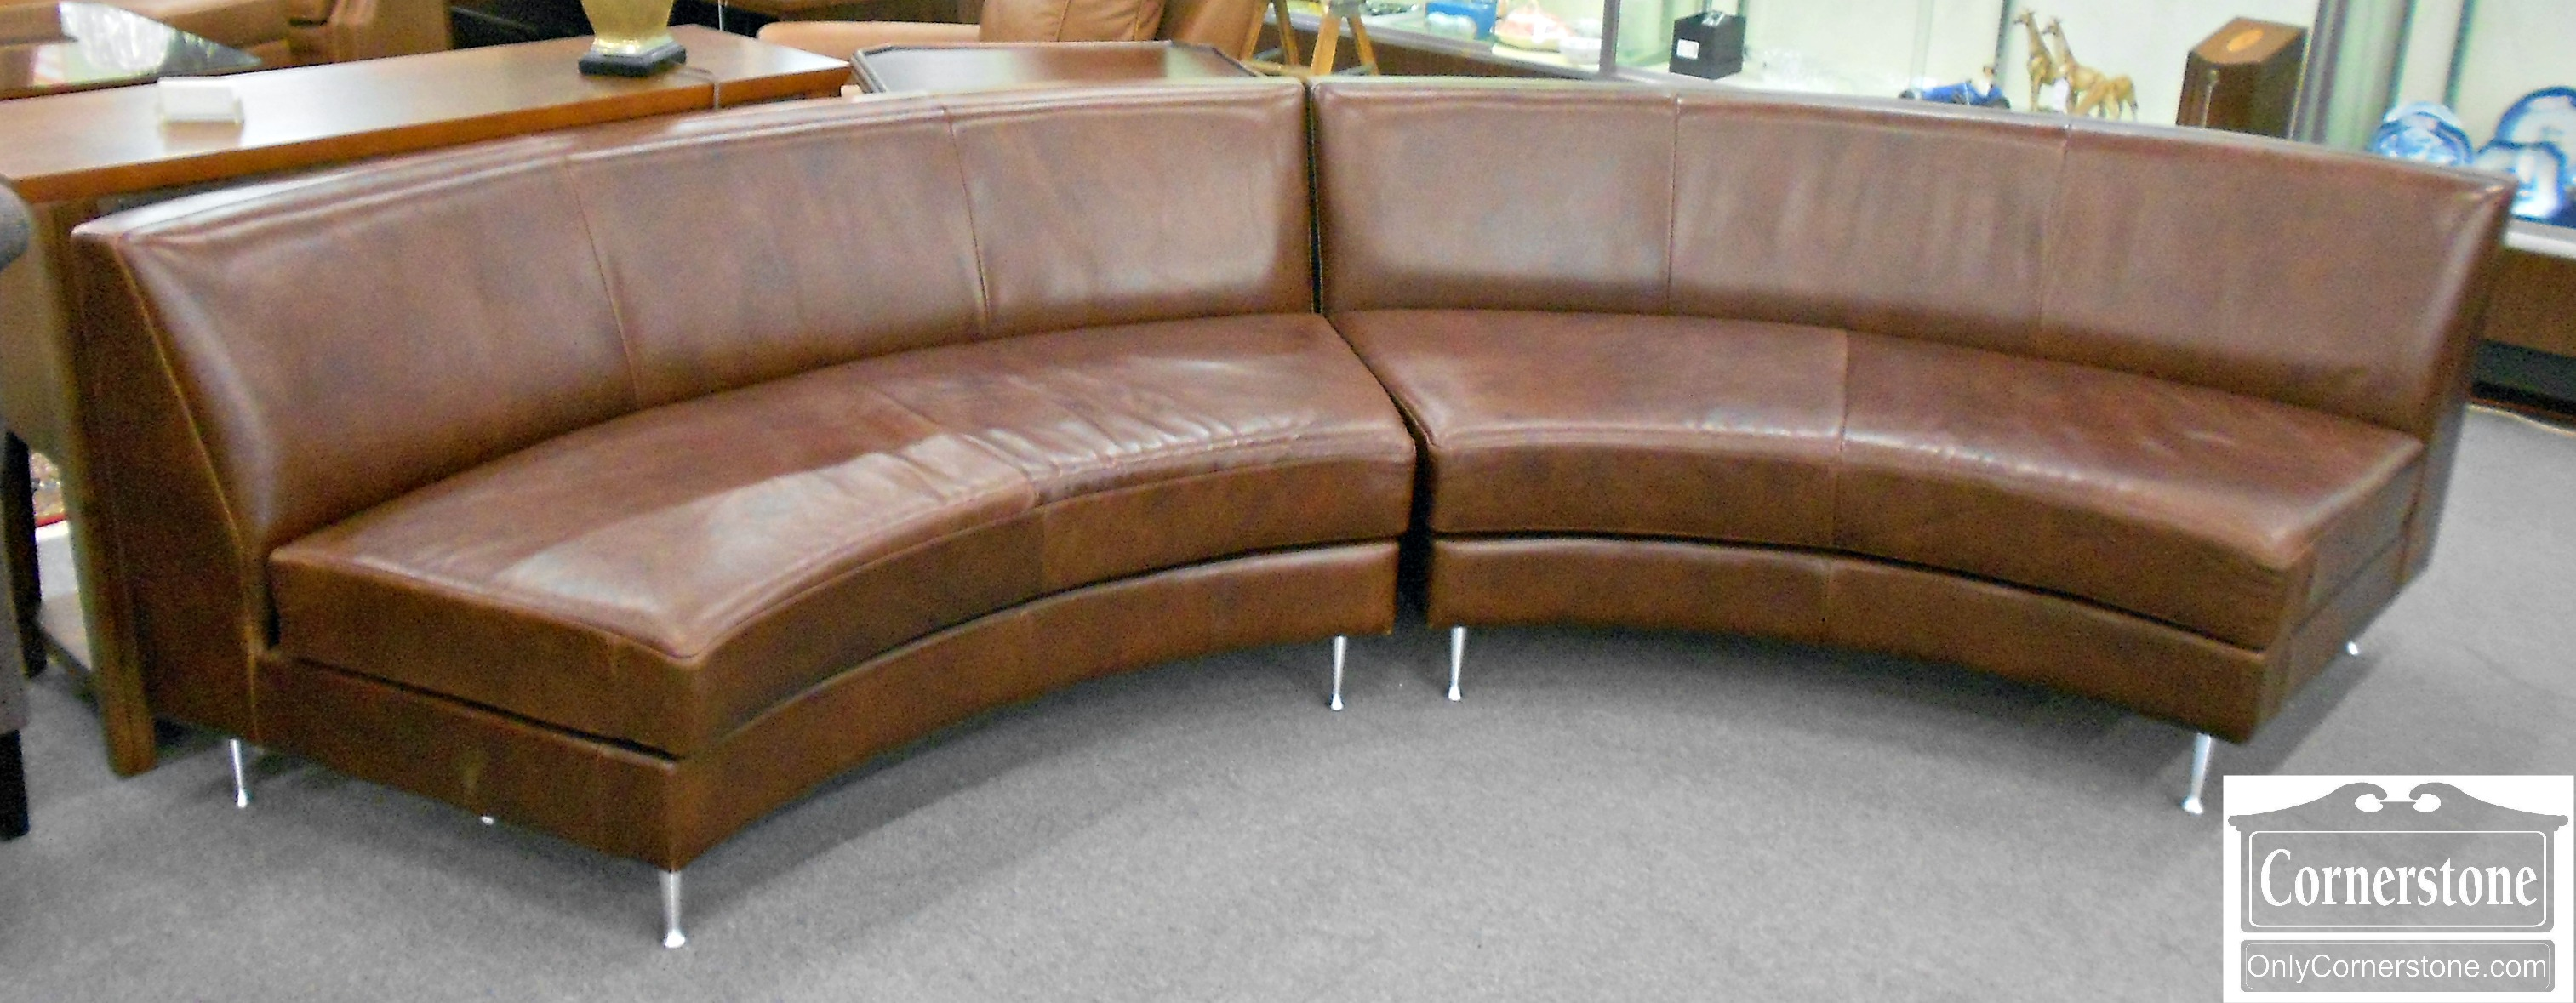 5960-83 American Leather Company 2 Piece Leather Sectional